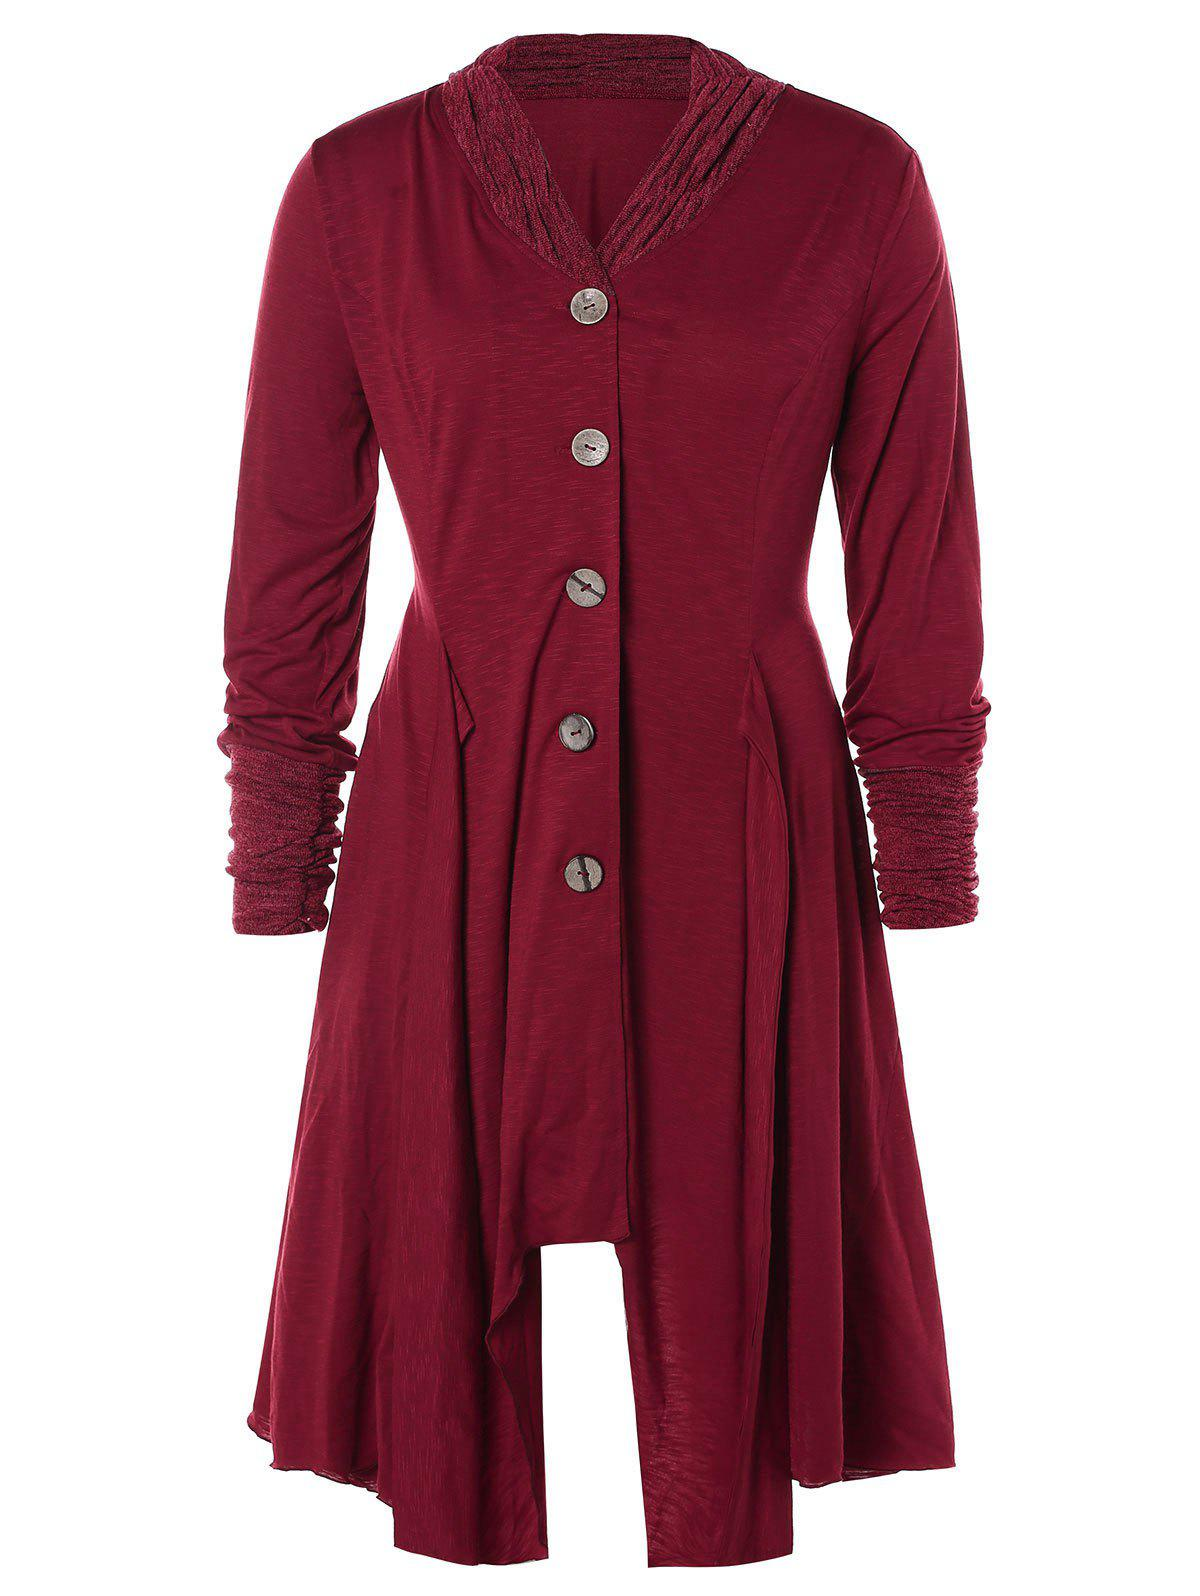 Plus Size Contrast Trim Button Up Asymmetrical Coat - FIREBRICK 2X